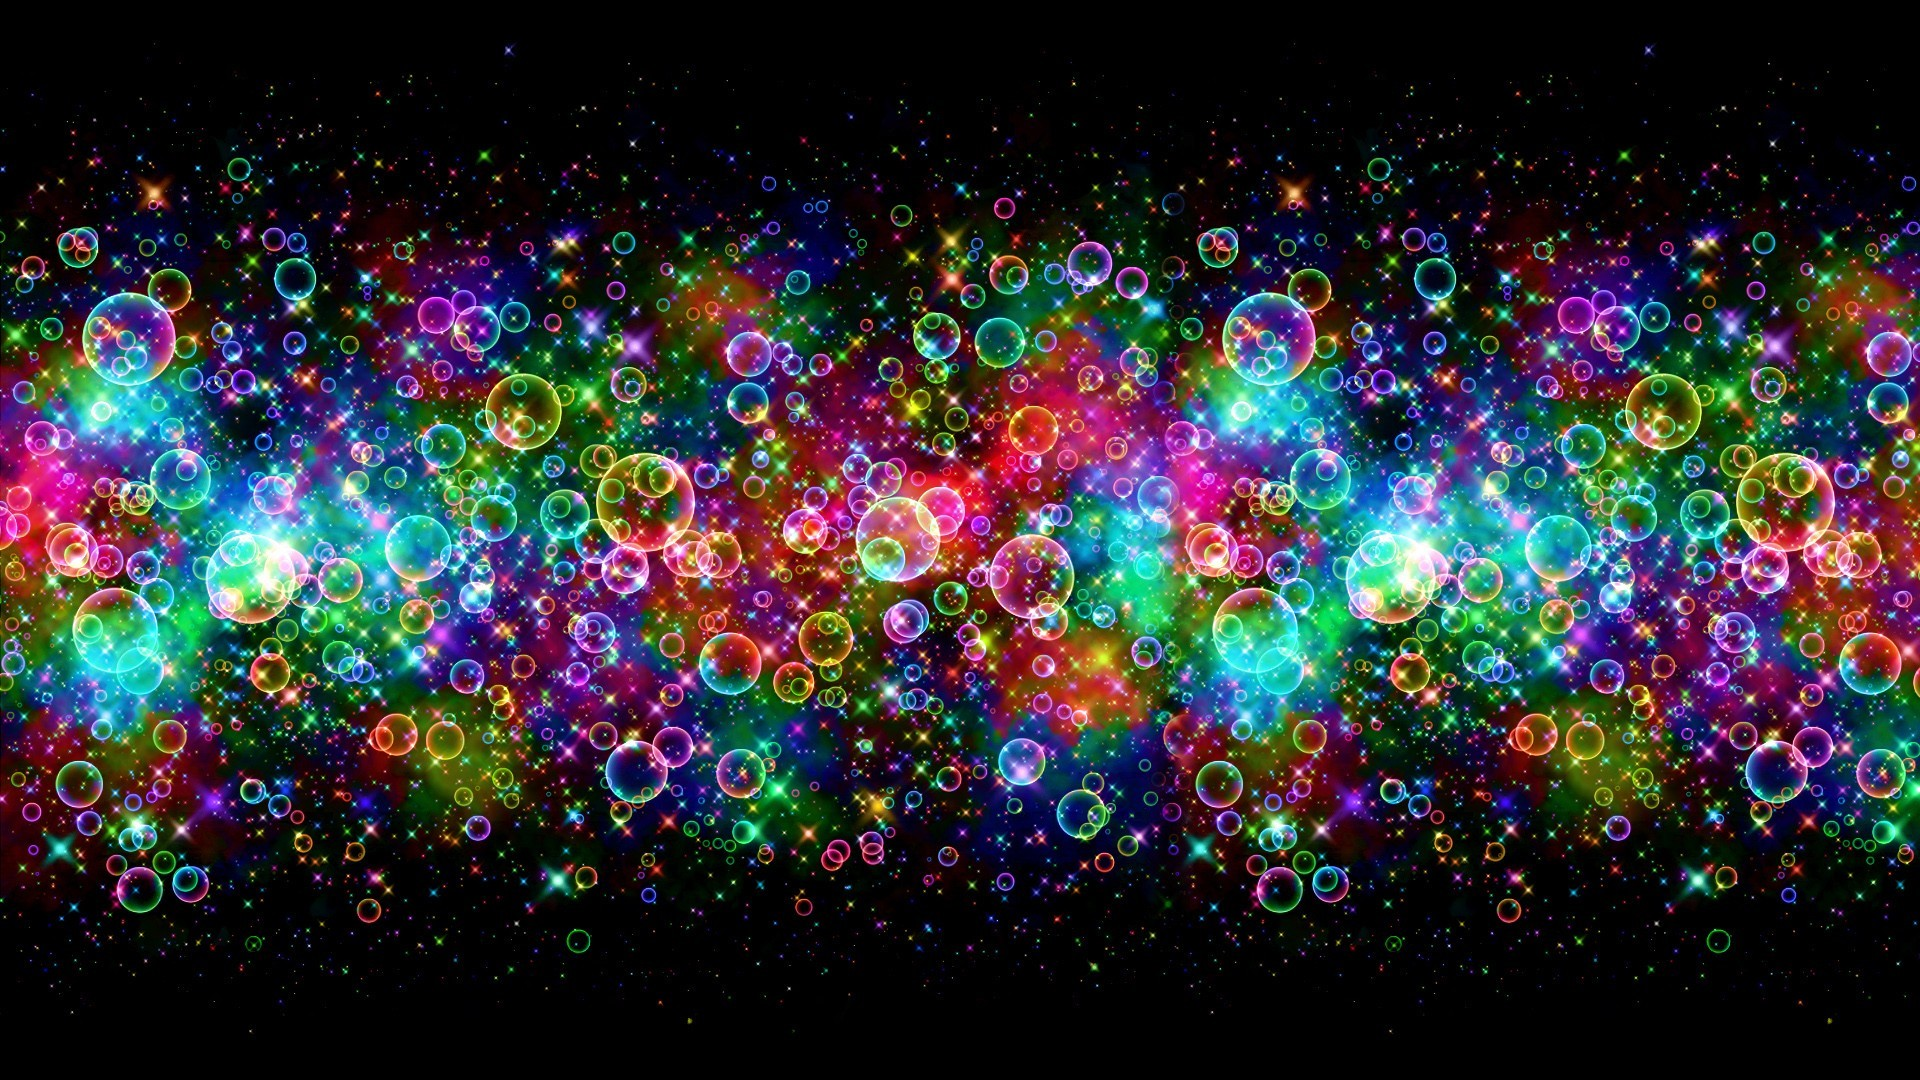 Abstract HD Wallpapers Backgrounds Wallpaper